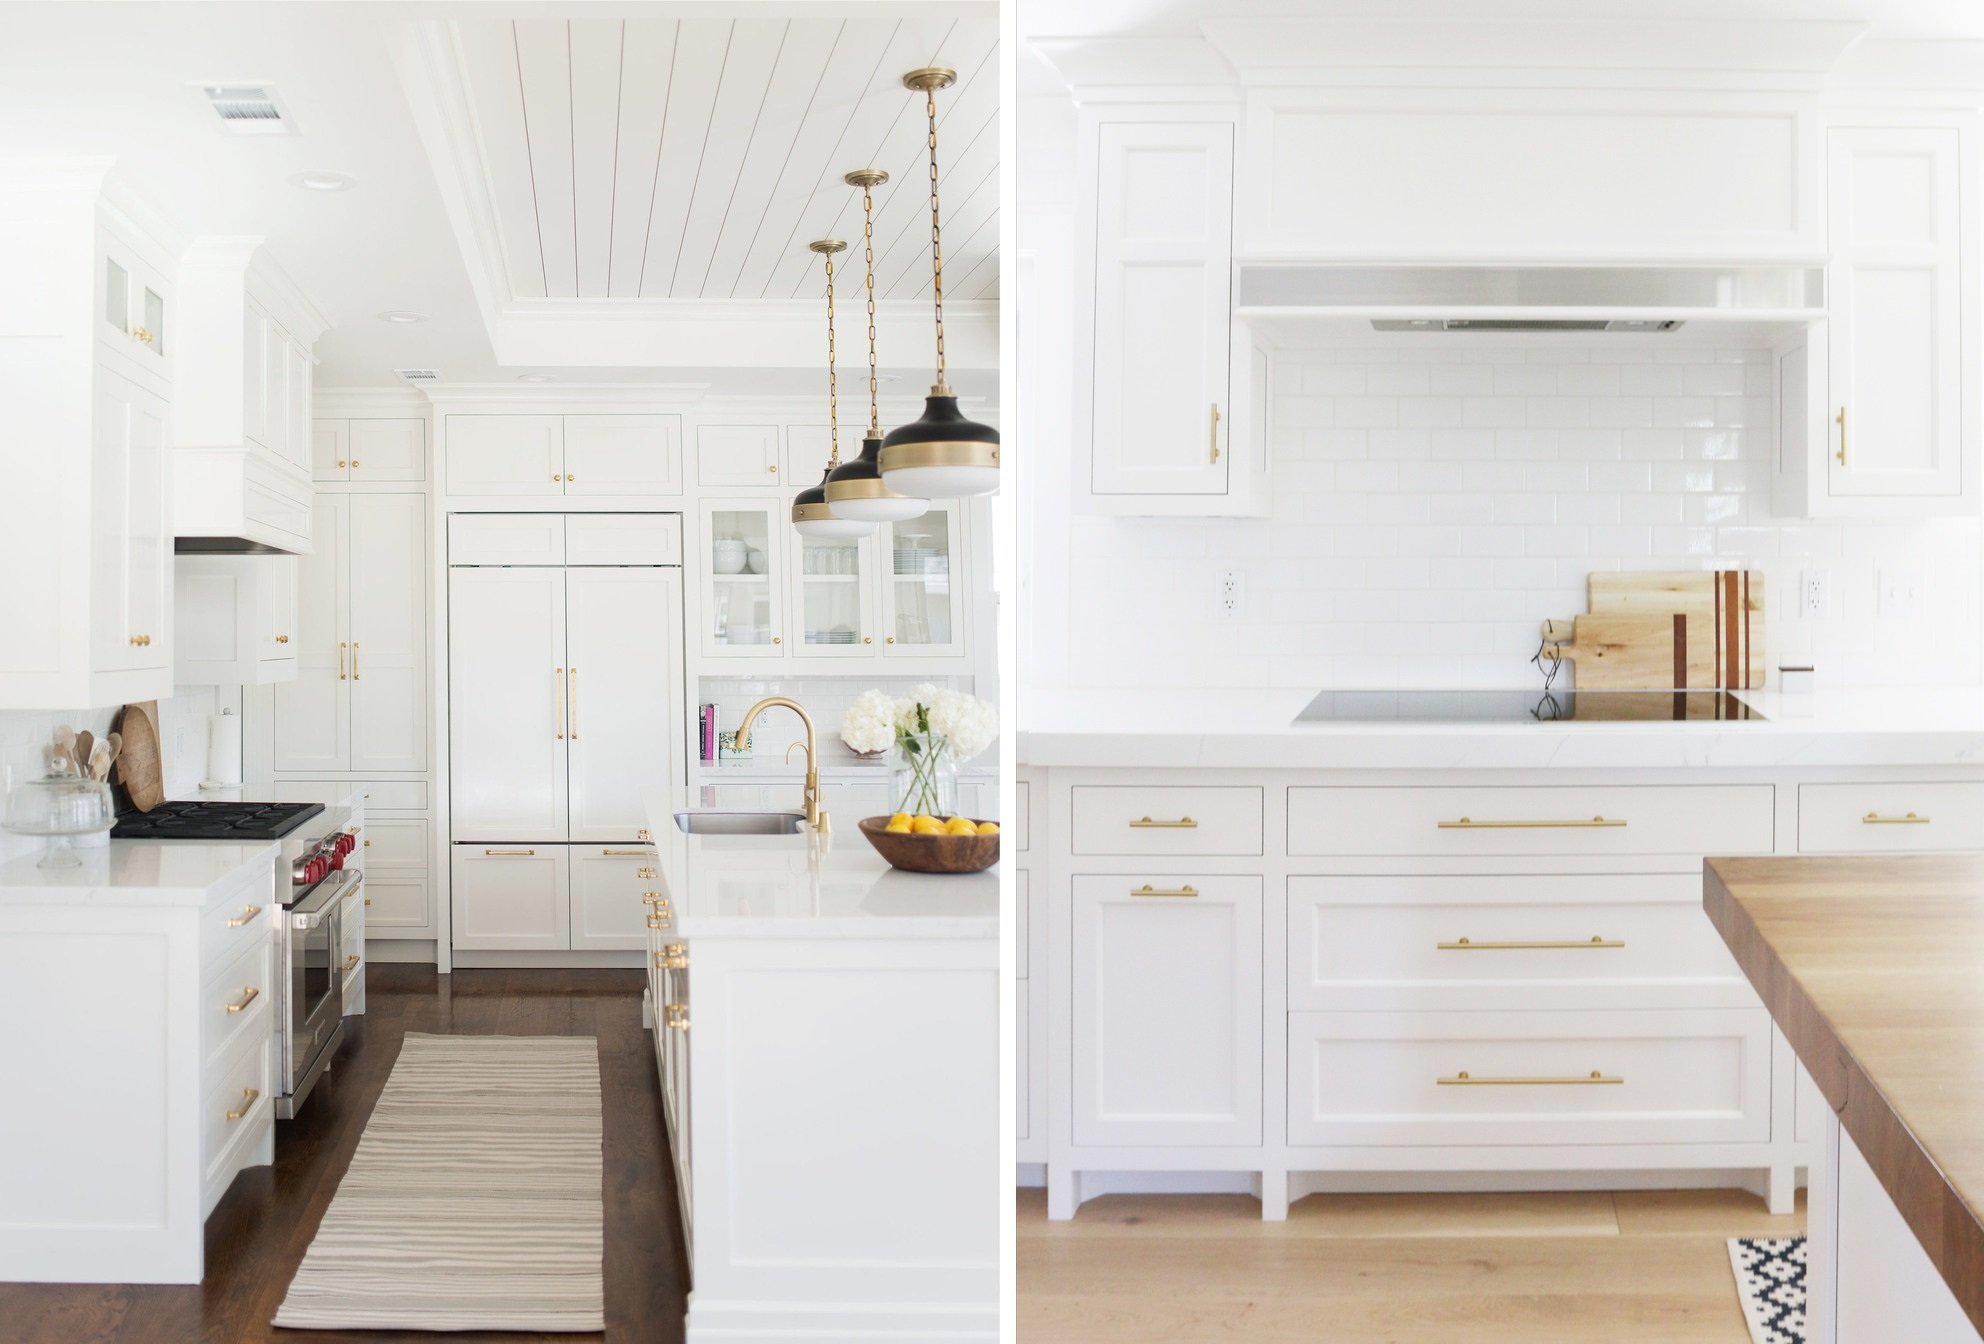 gold kitchen handles in white kitchens